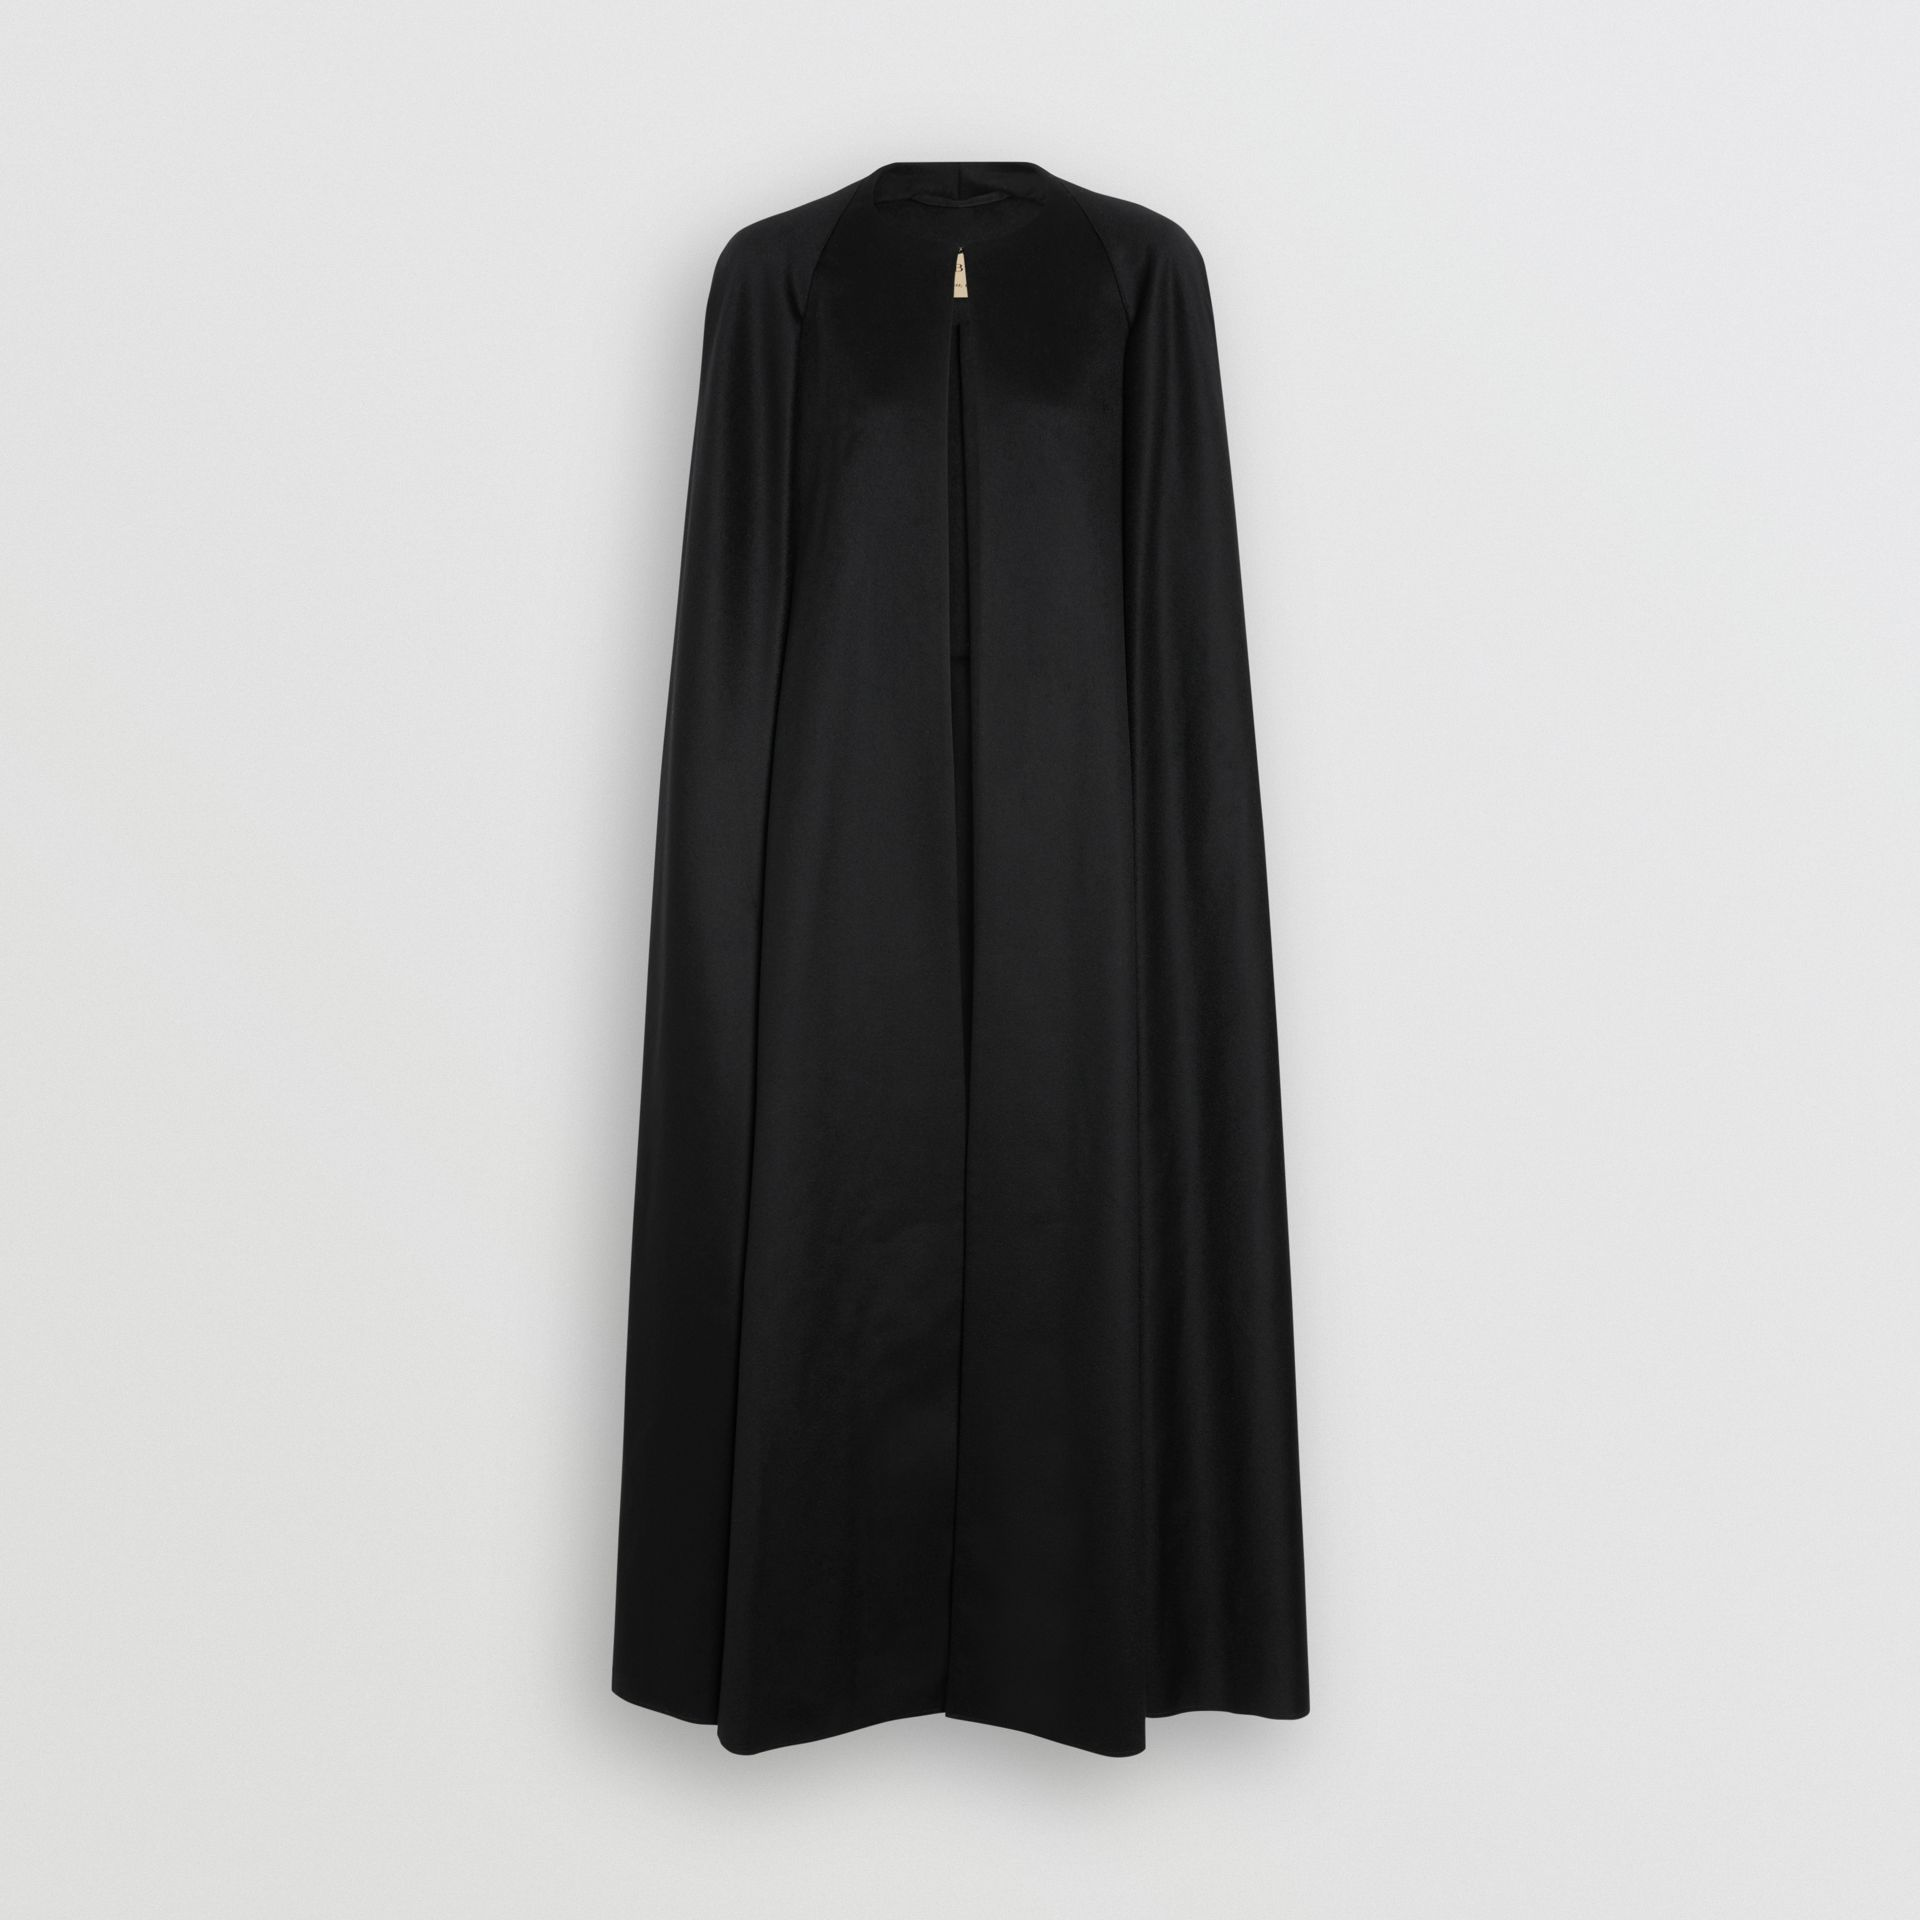 Long Doeskin Wool Cape in Black - Women | Burberry United Kingdom - gallery image 3